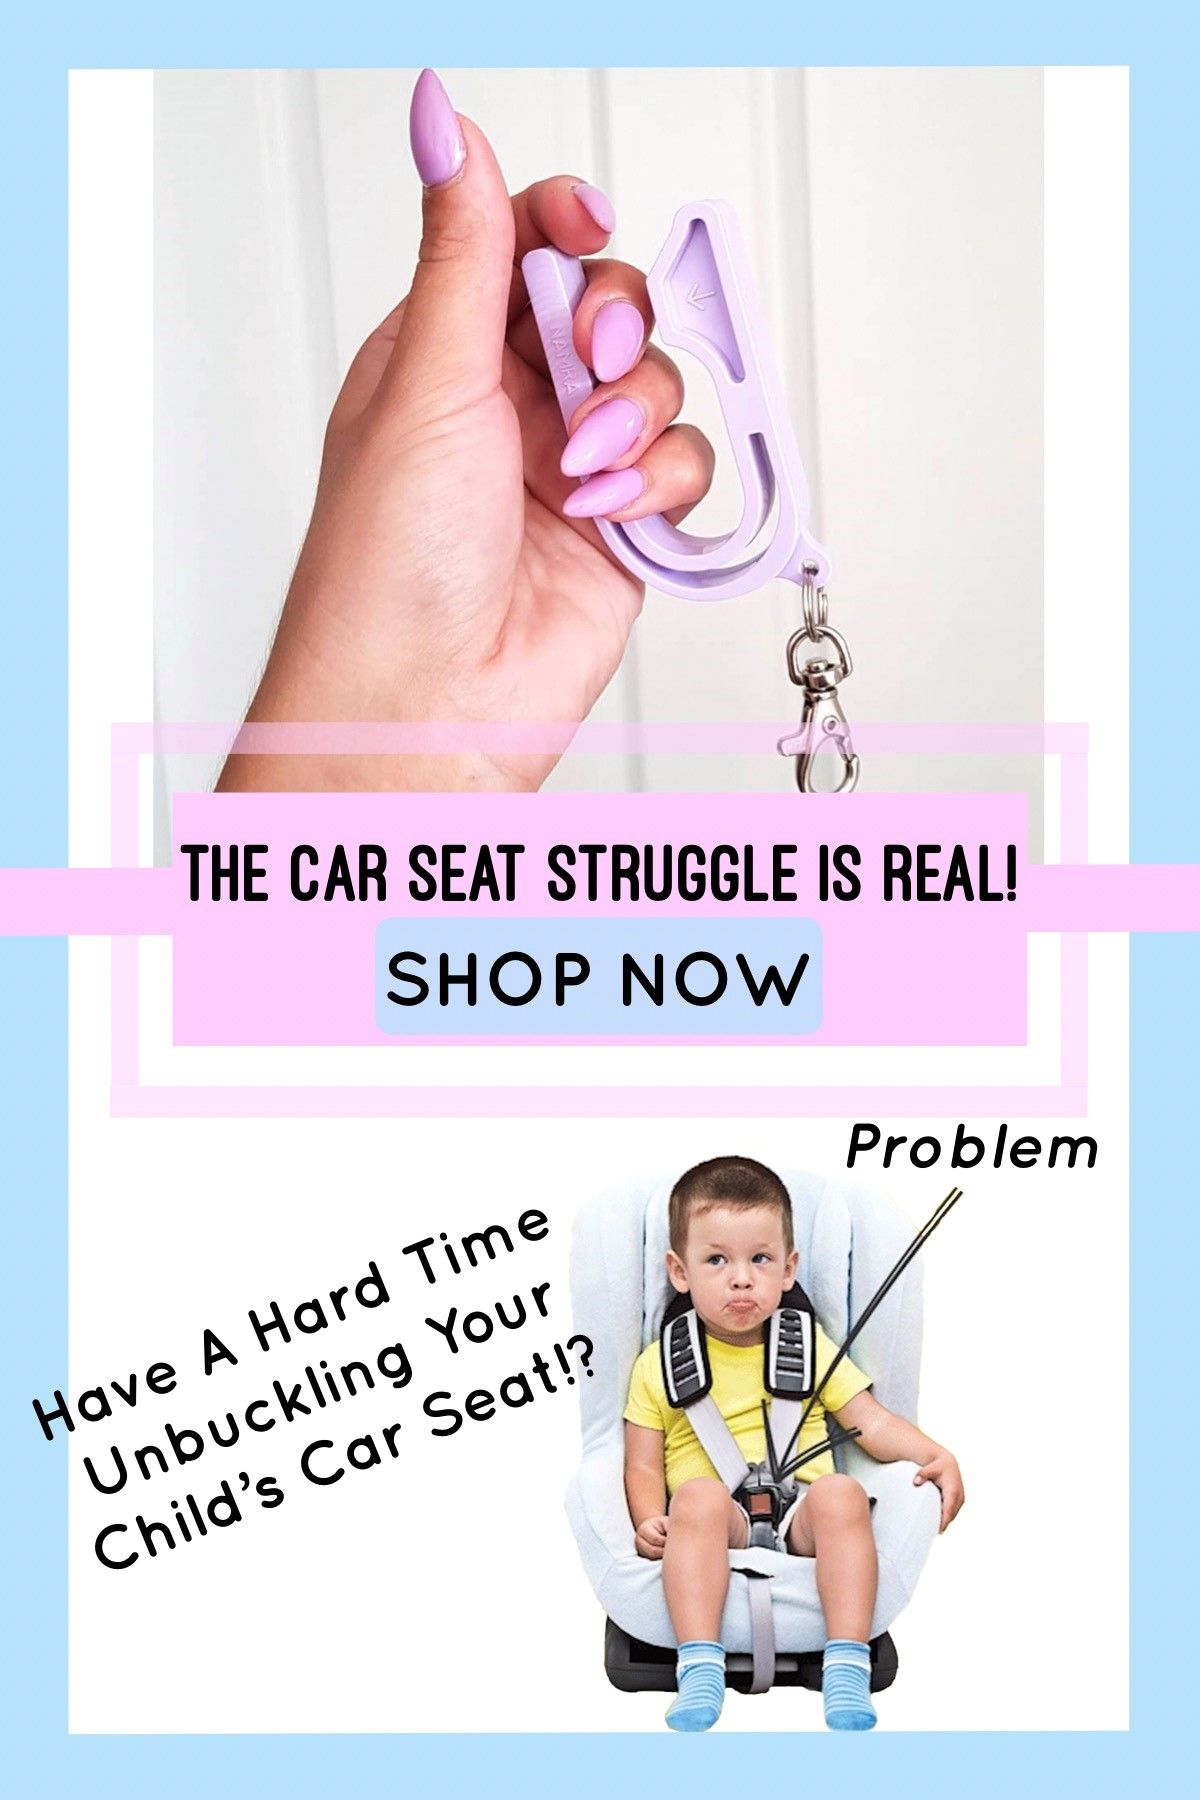 The Car Seat Key Is A Small Device That Slides Over Red Button On Childs And With Slight Pressure Releases Harness